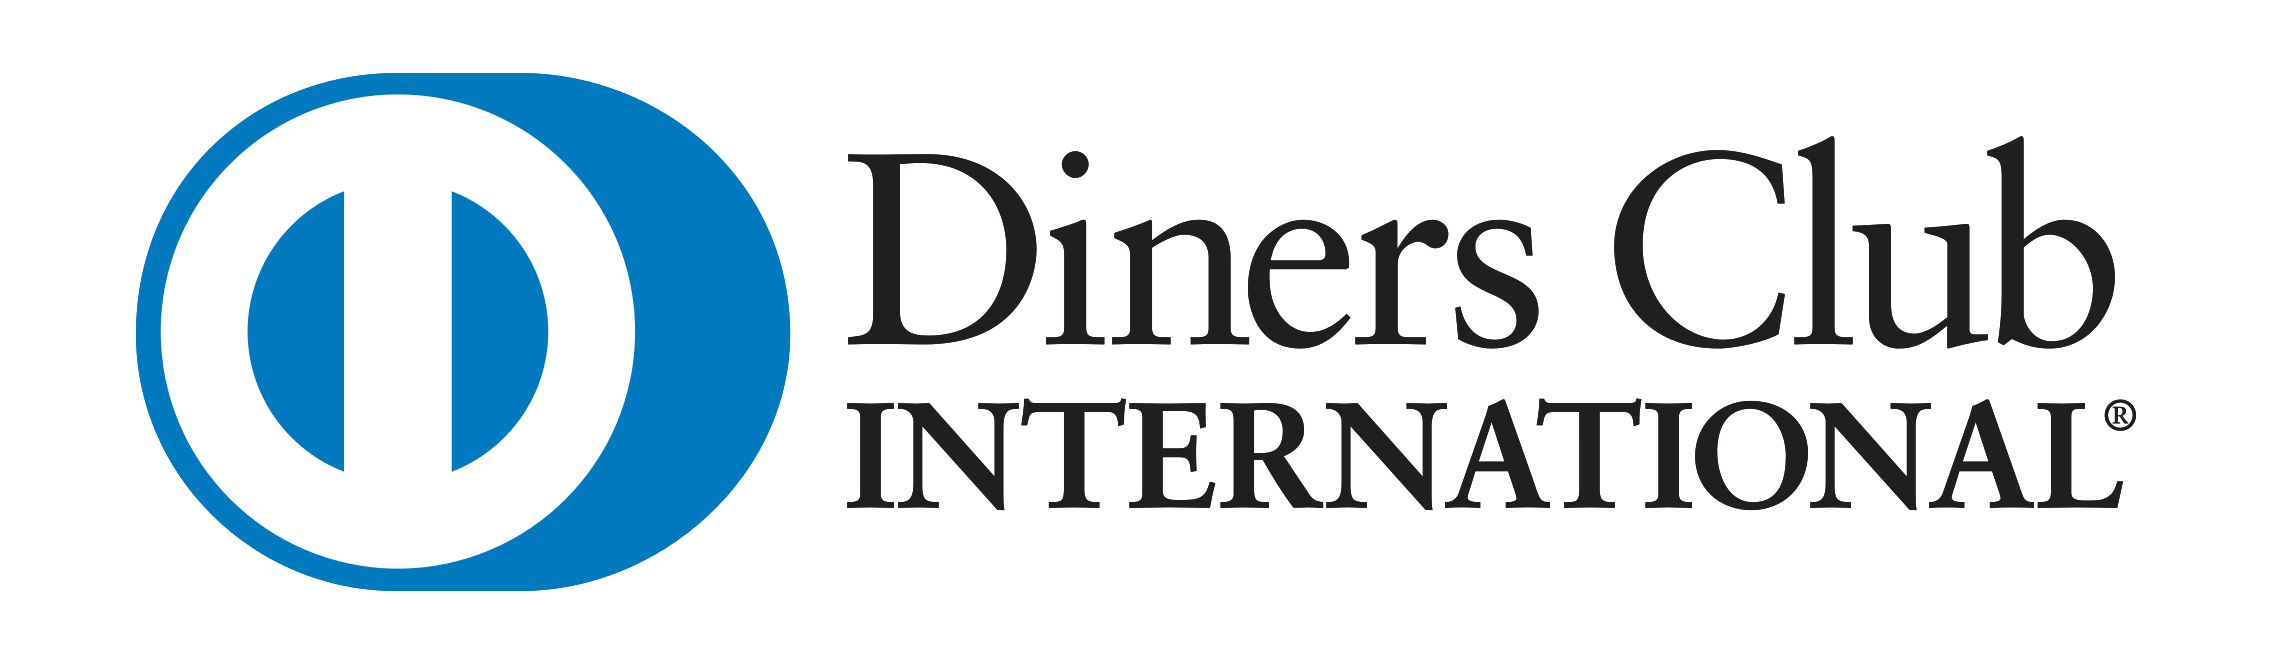 diners club international logo payment purchase canberra short term holiday eftpos paywave credit card debitaccommodation pay option